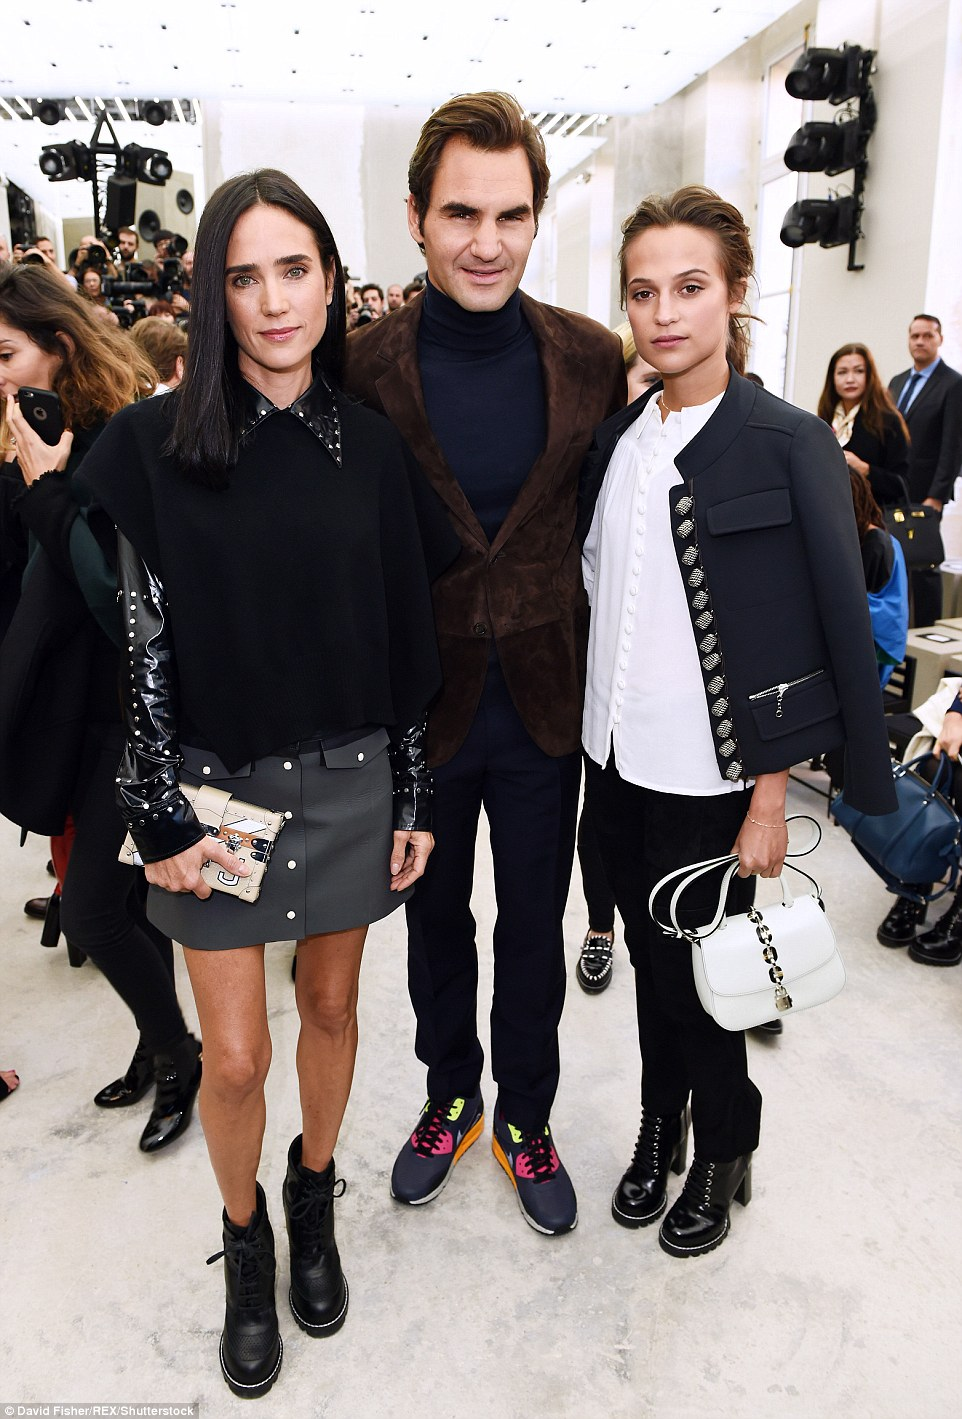 In good company: Roger also posed with Jennifer (left) and Alicia (right) who wore matching boots